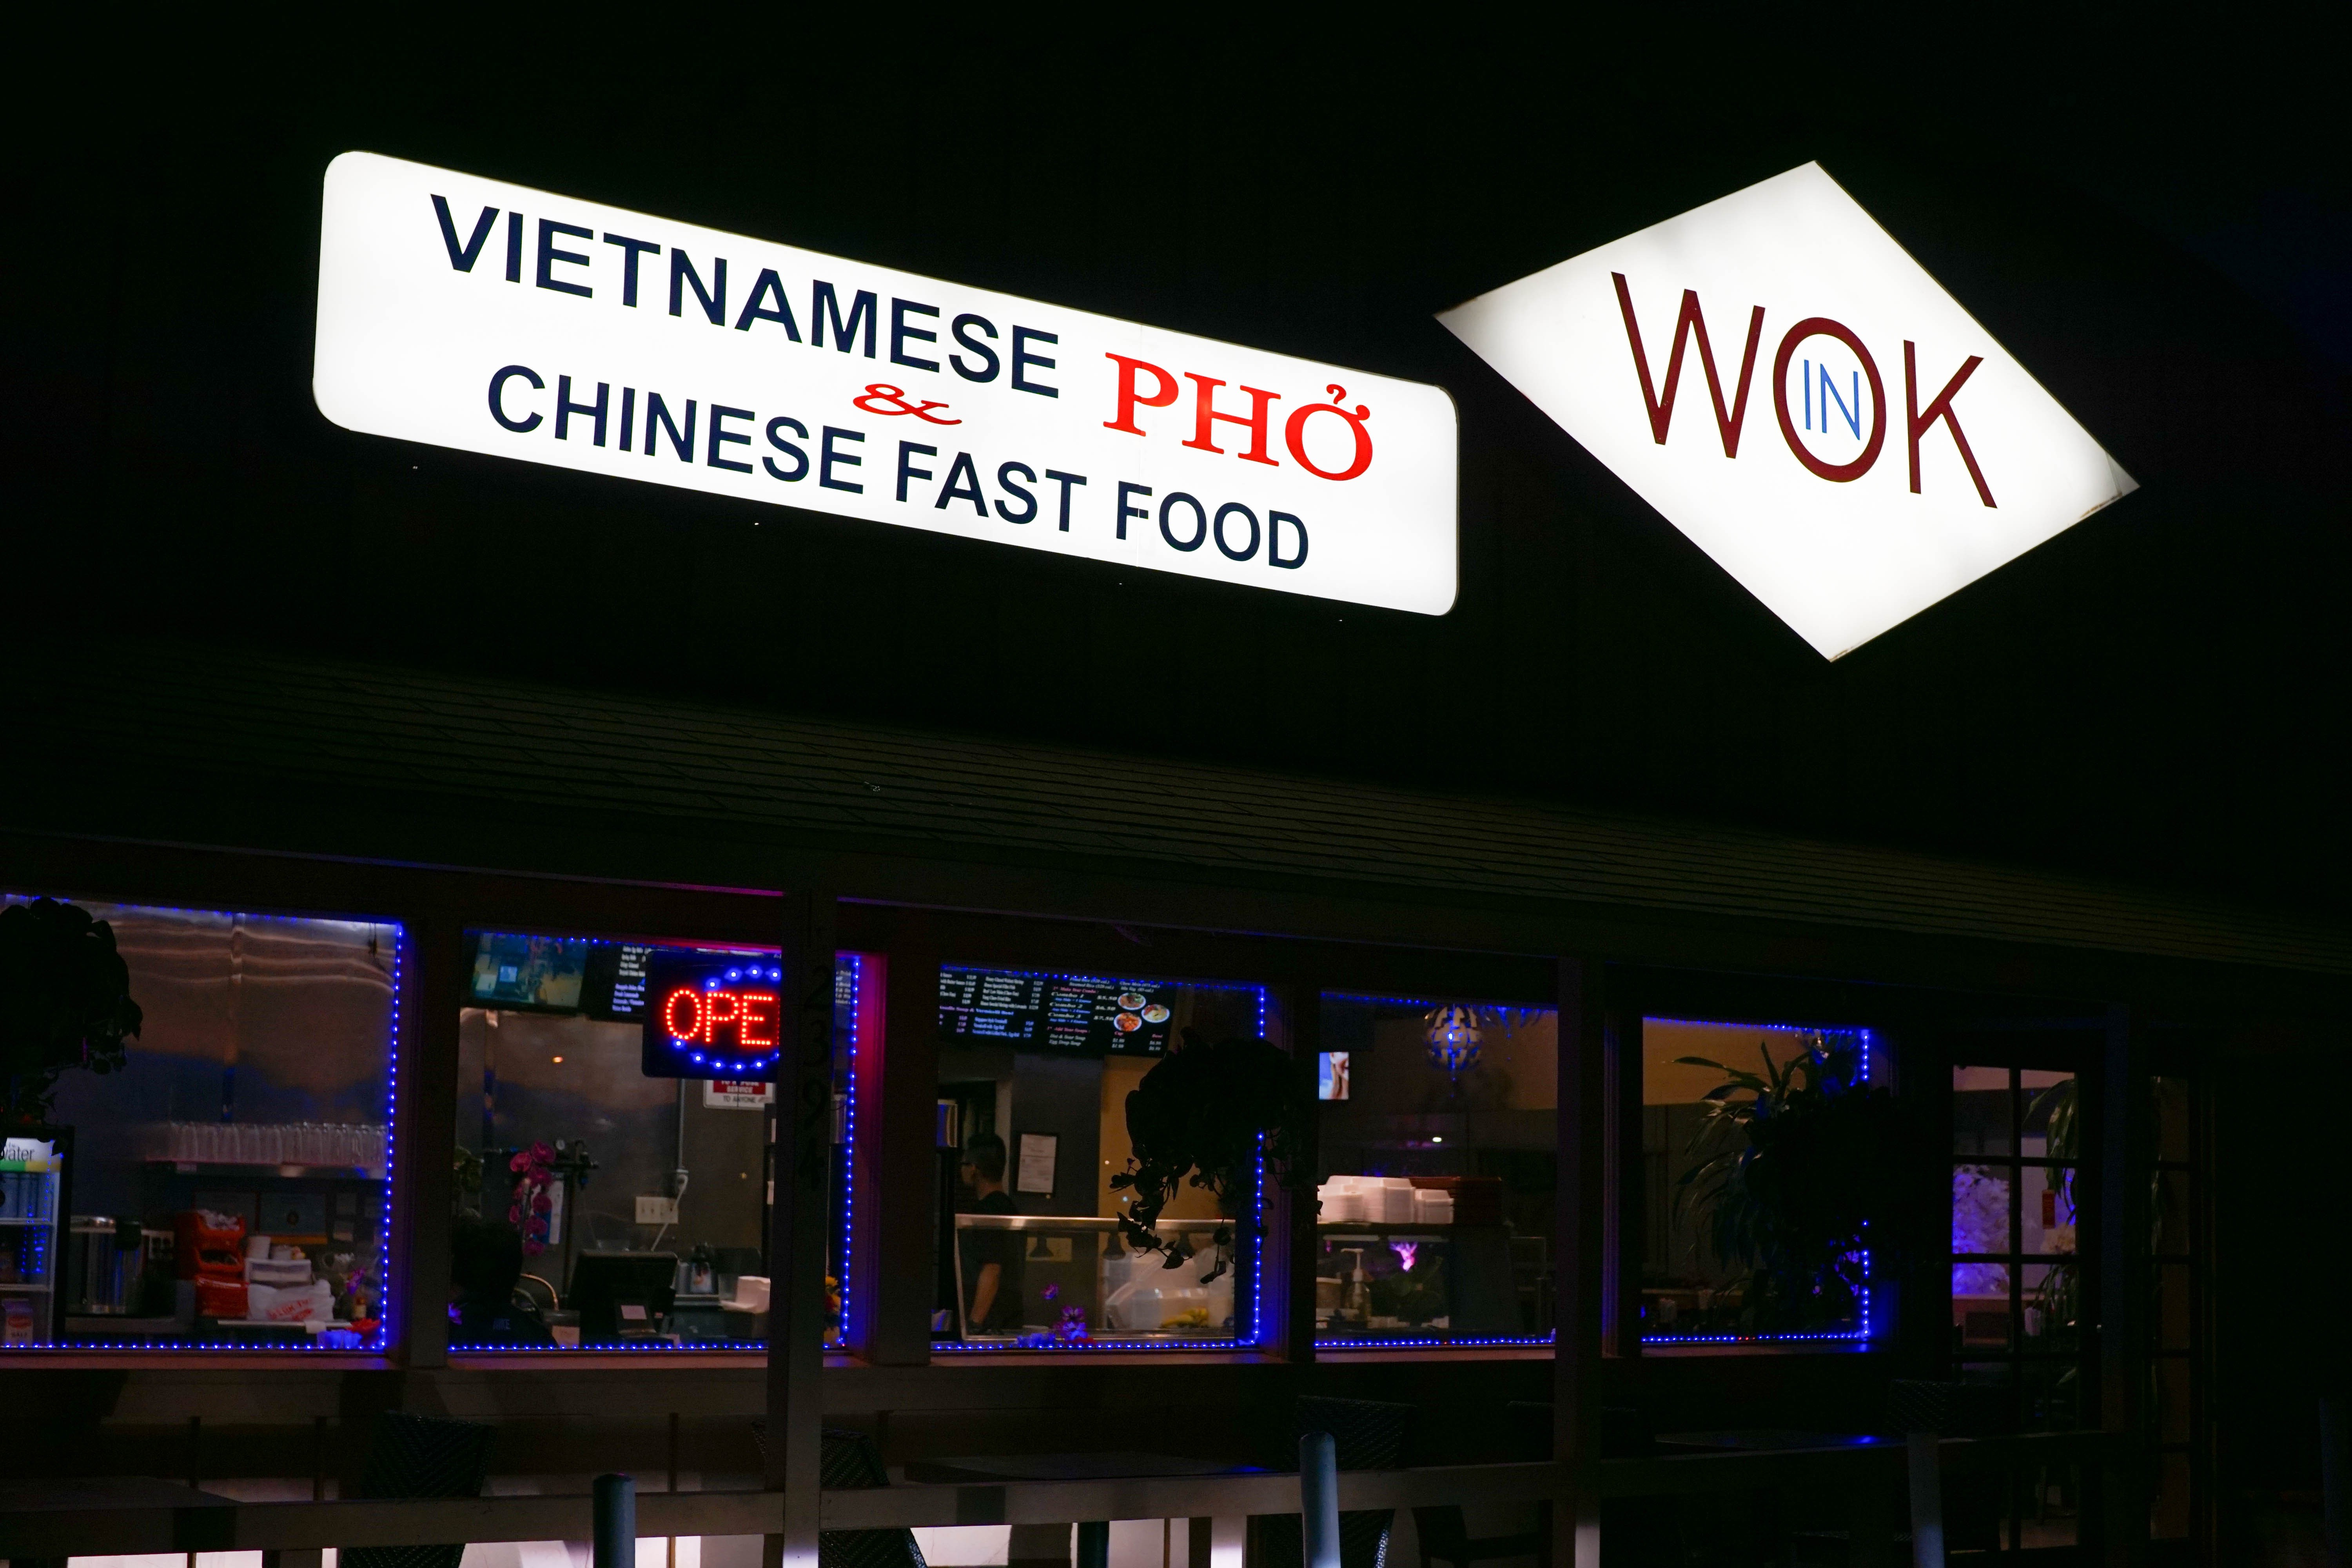 Two In One Restaurant At Wok In Hole In The Wall Oc Weekly